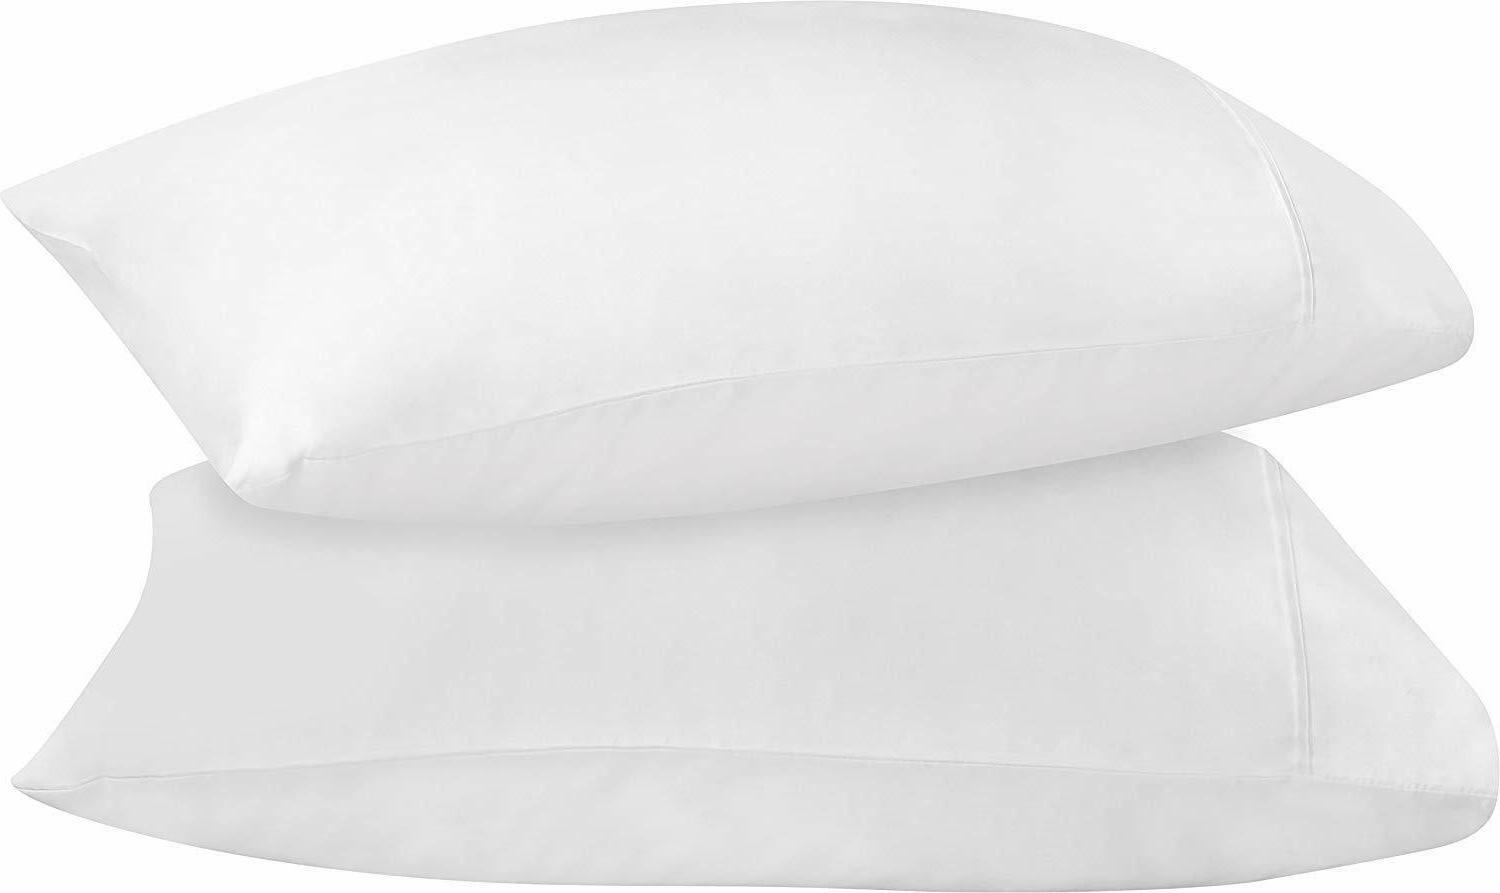 Utopia Bedding Pillowcases 2 Pack Brushed Microfiber Pillow